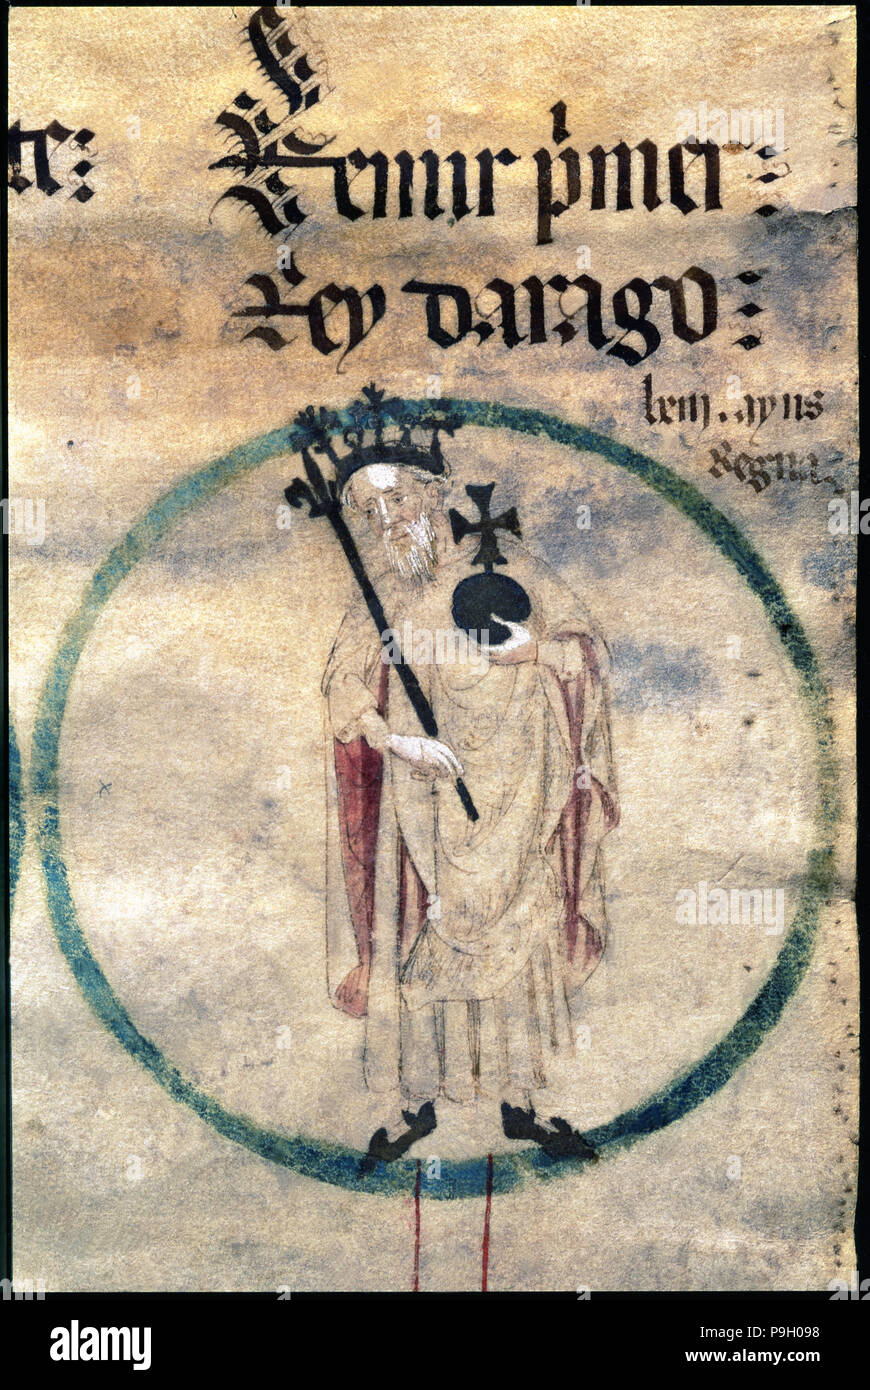 Ramiro I, (1000-1063), king of Aragón, count of Sobrarbe and Ribagorza, natural son of Sancho the Major of Navarra, miniature in a 15th century p - Stock Image